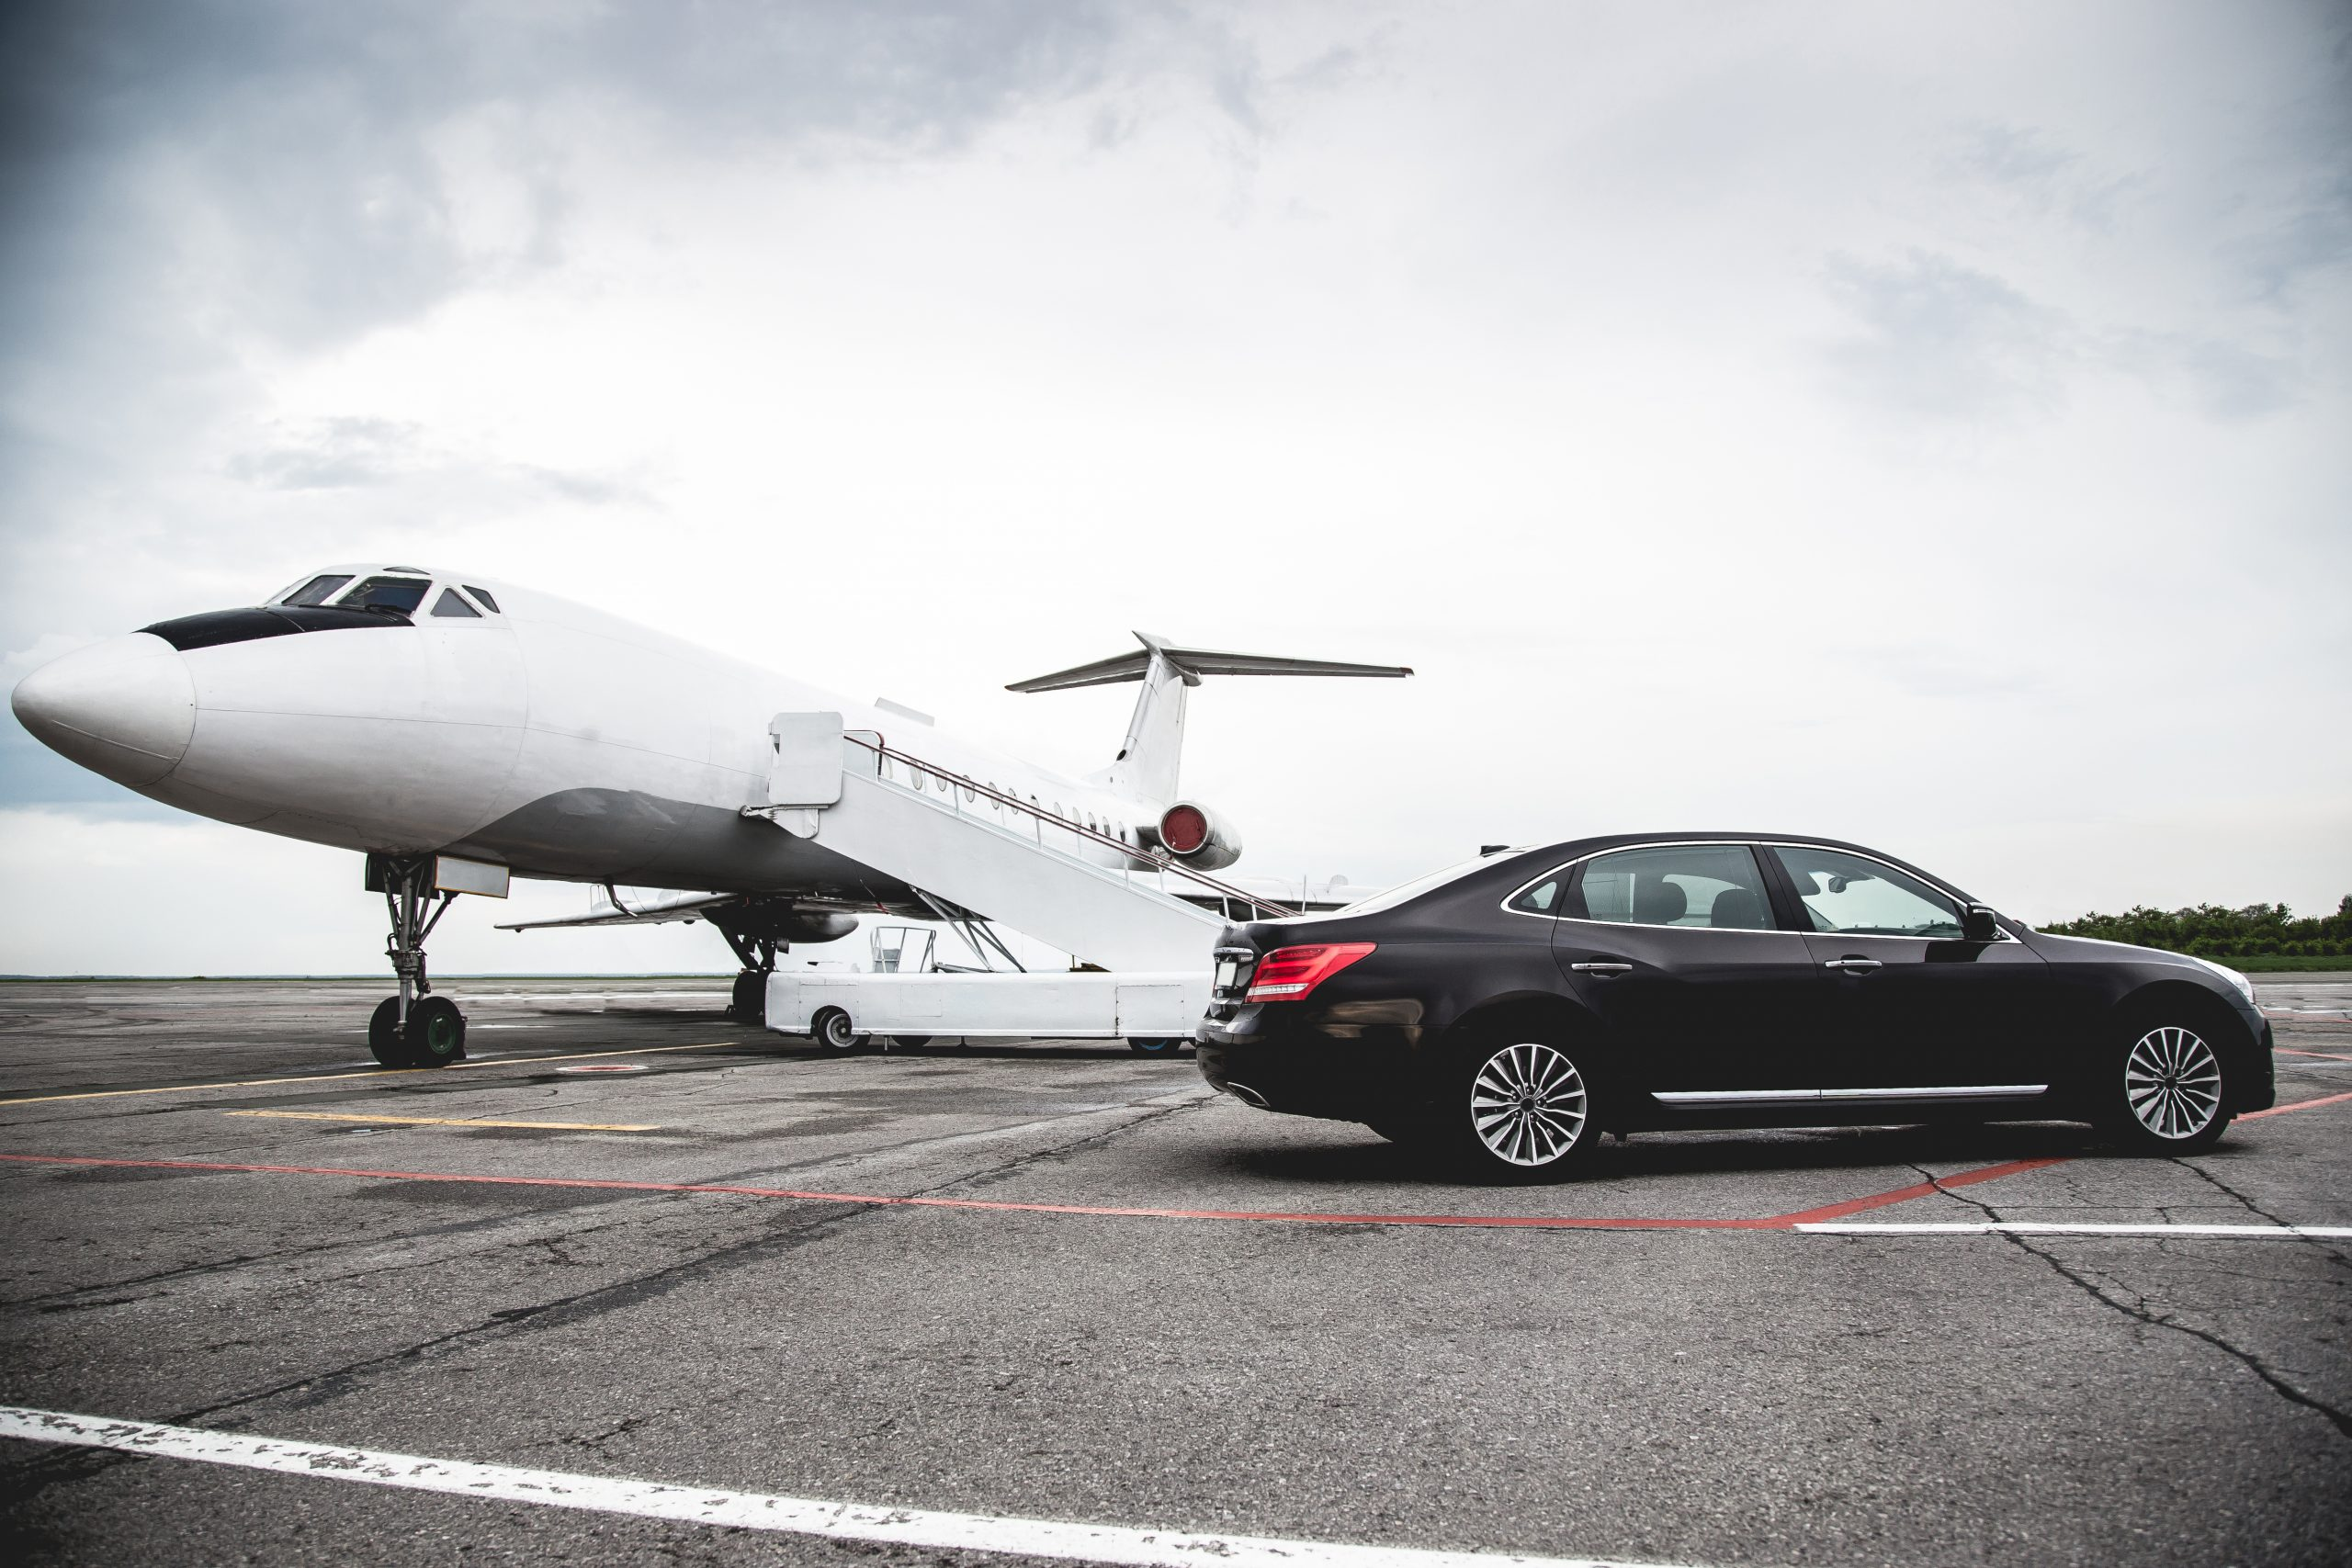 limousine in front a private jet